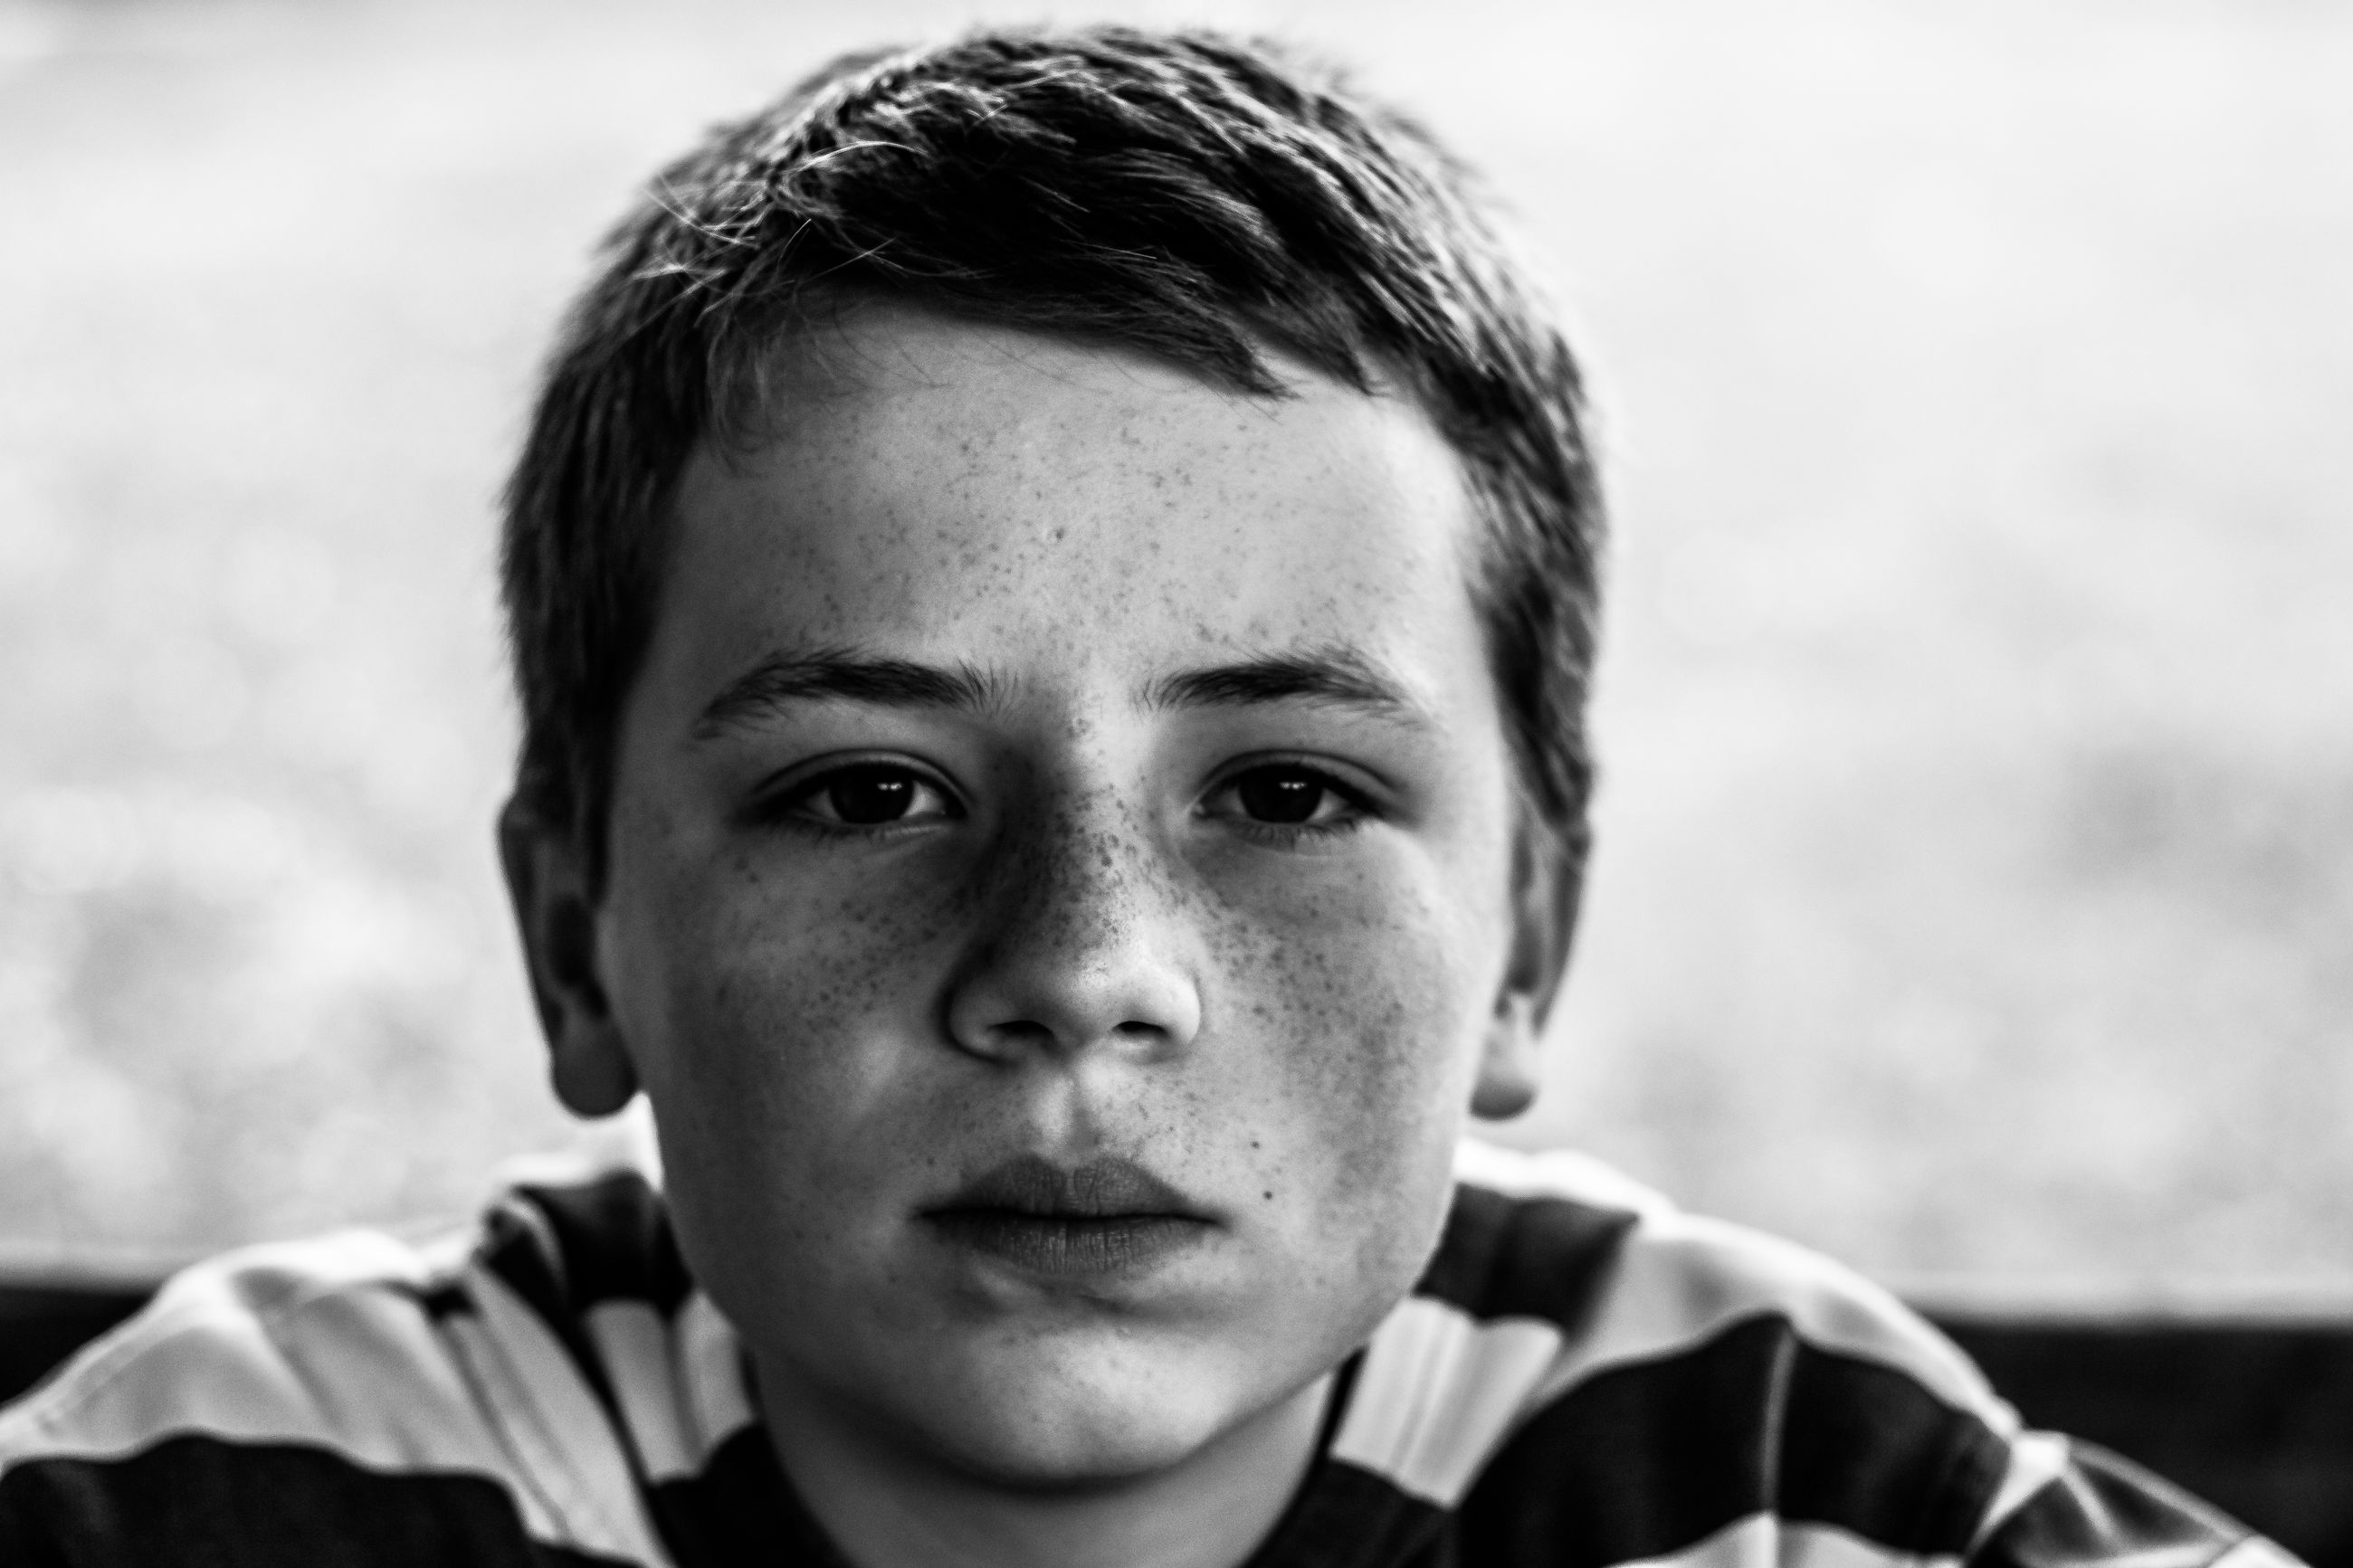 portrait, looking at camera, headshot, person, close-up, focus on foreground, lifestyles, front view, leisure activity, young men, boys, indoors, human face, childhood, elementary age, head and shoulders, innocence, cute